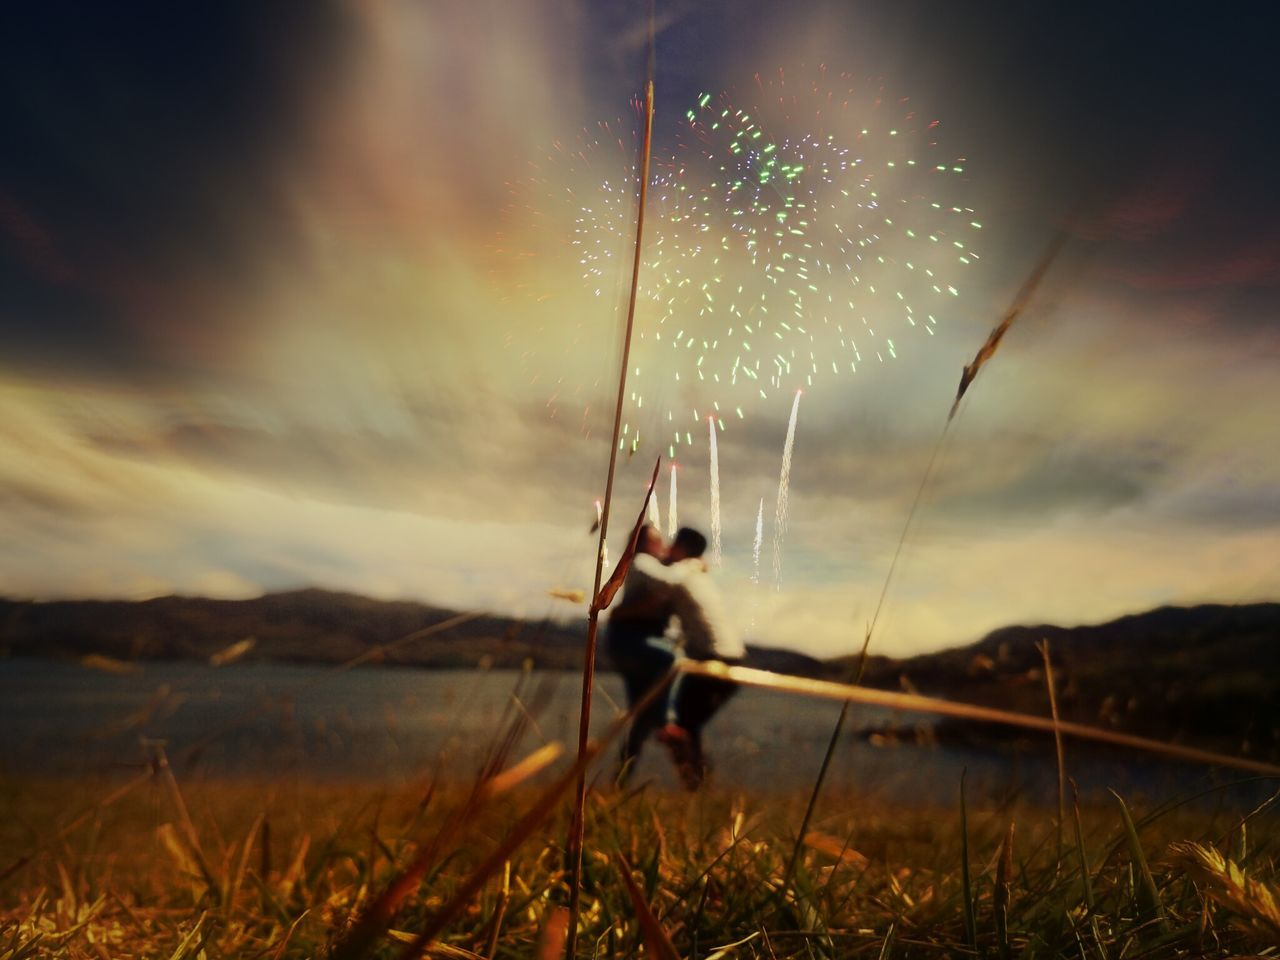 sky, firework display, outdoors, exploding, long exposure, firework - man made object, event, arts culture and entertainment, celebration, motion, night, no people, nature, scenics, grass, close-up